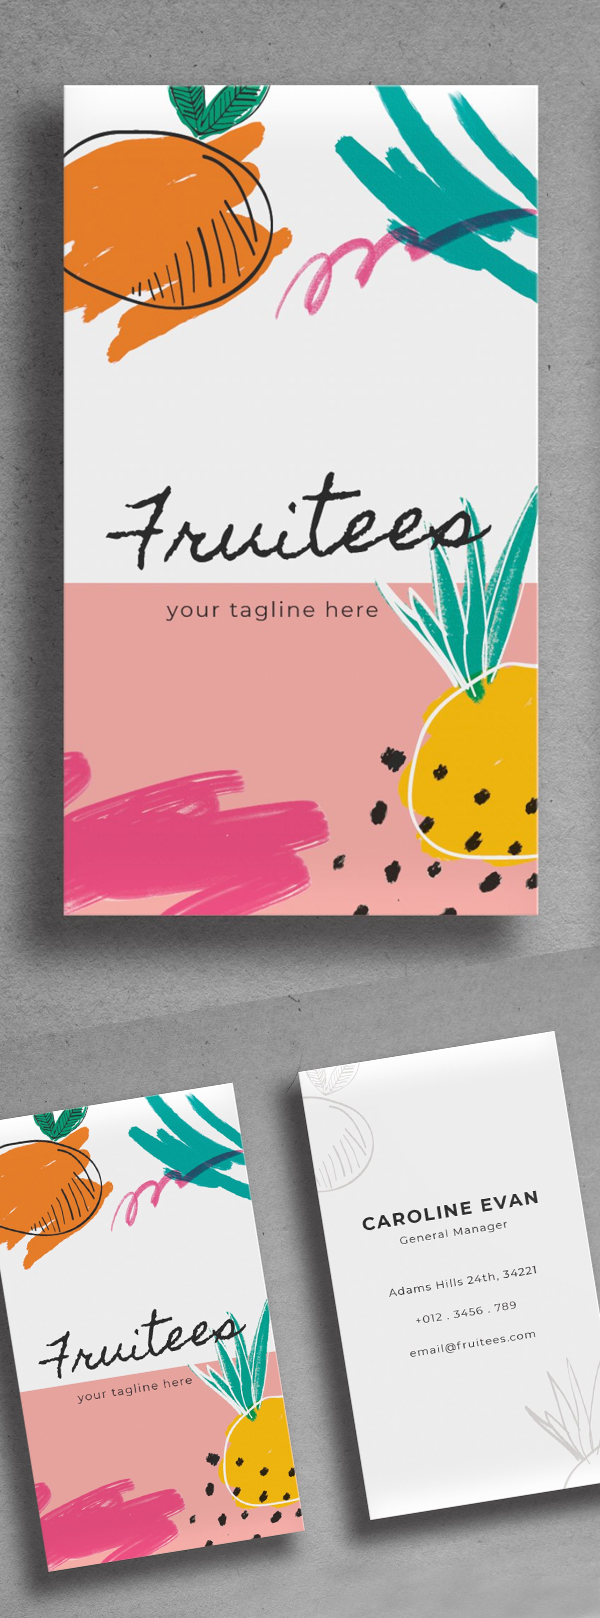 Simple Awesome Business Card Design